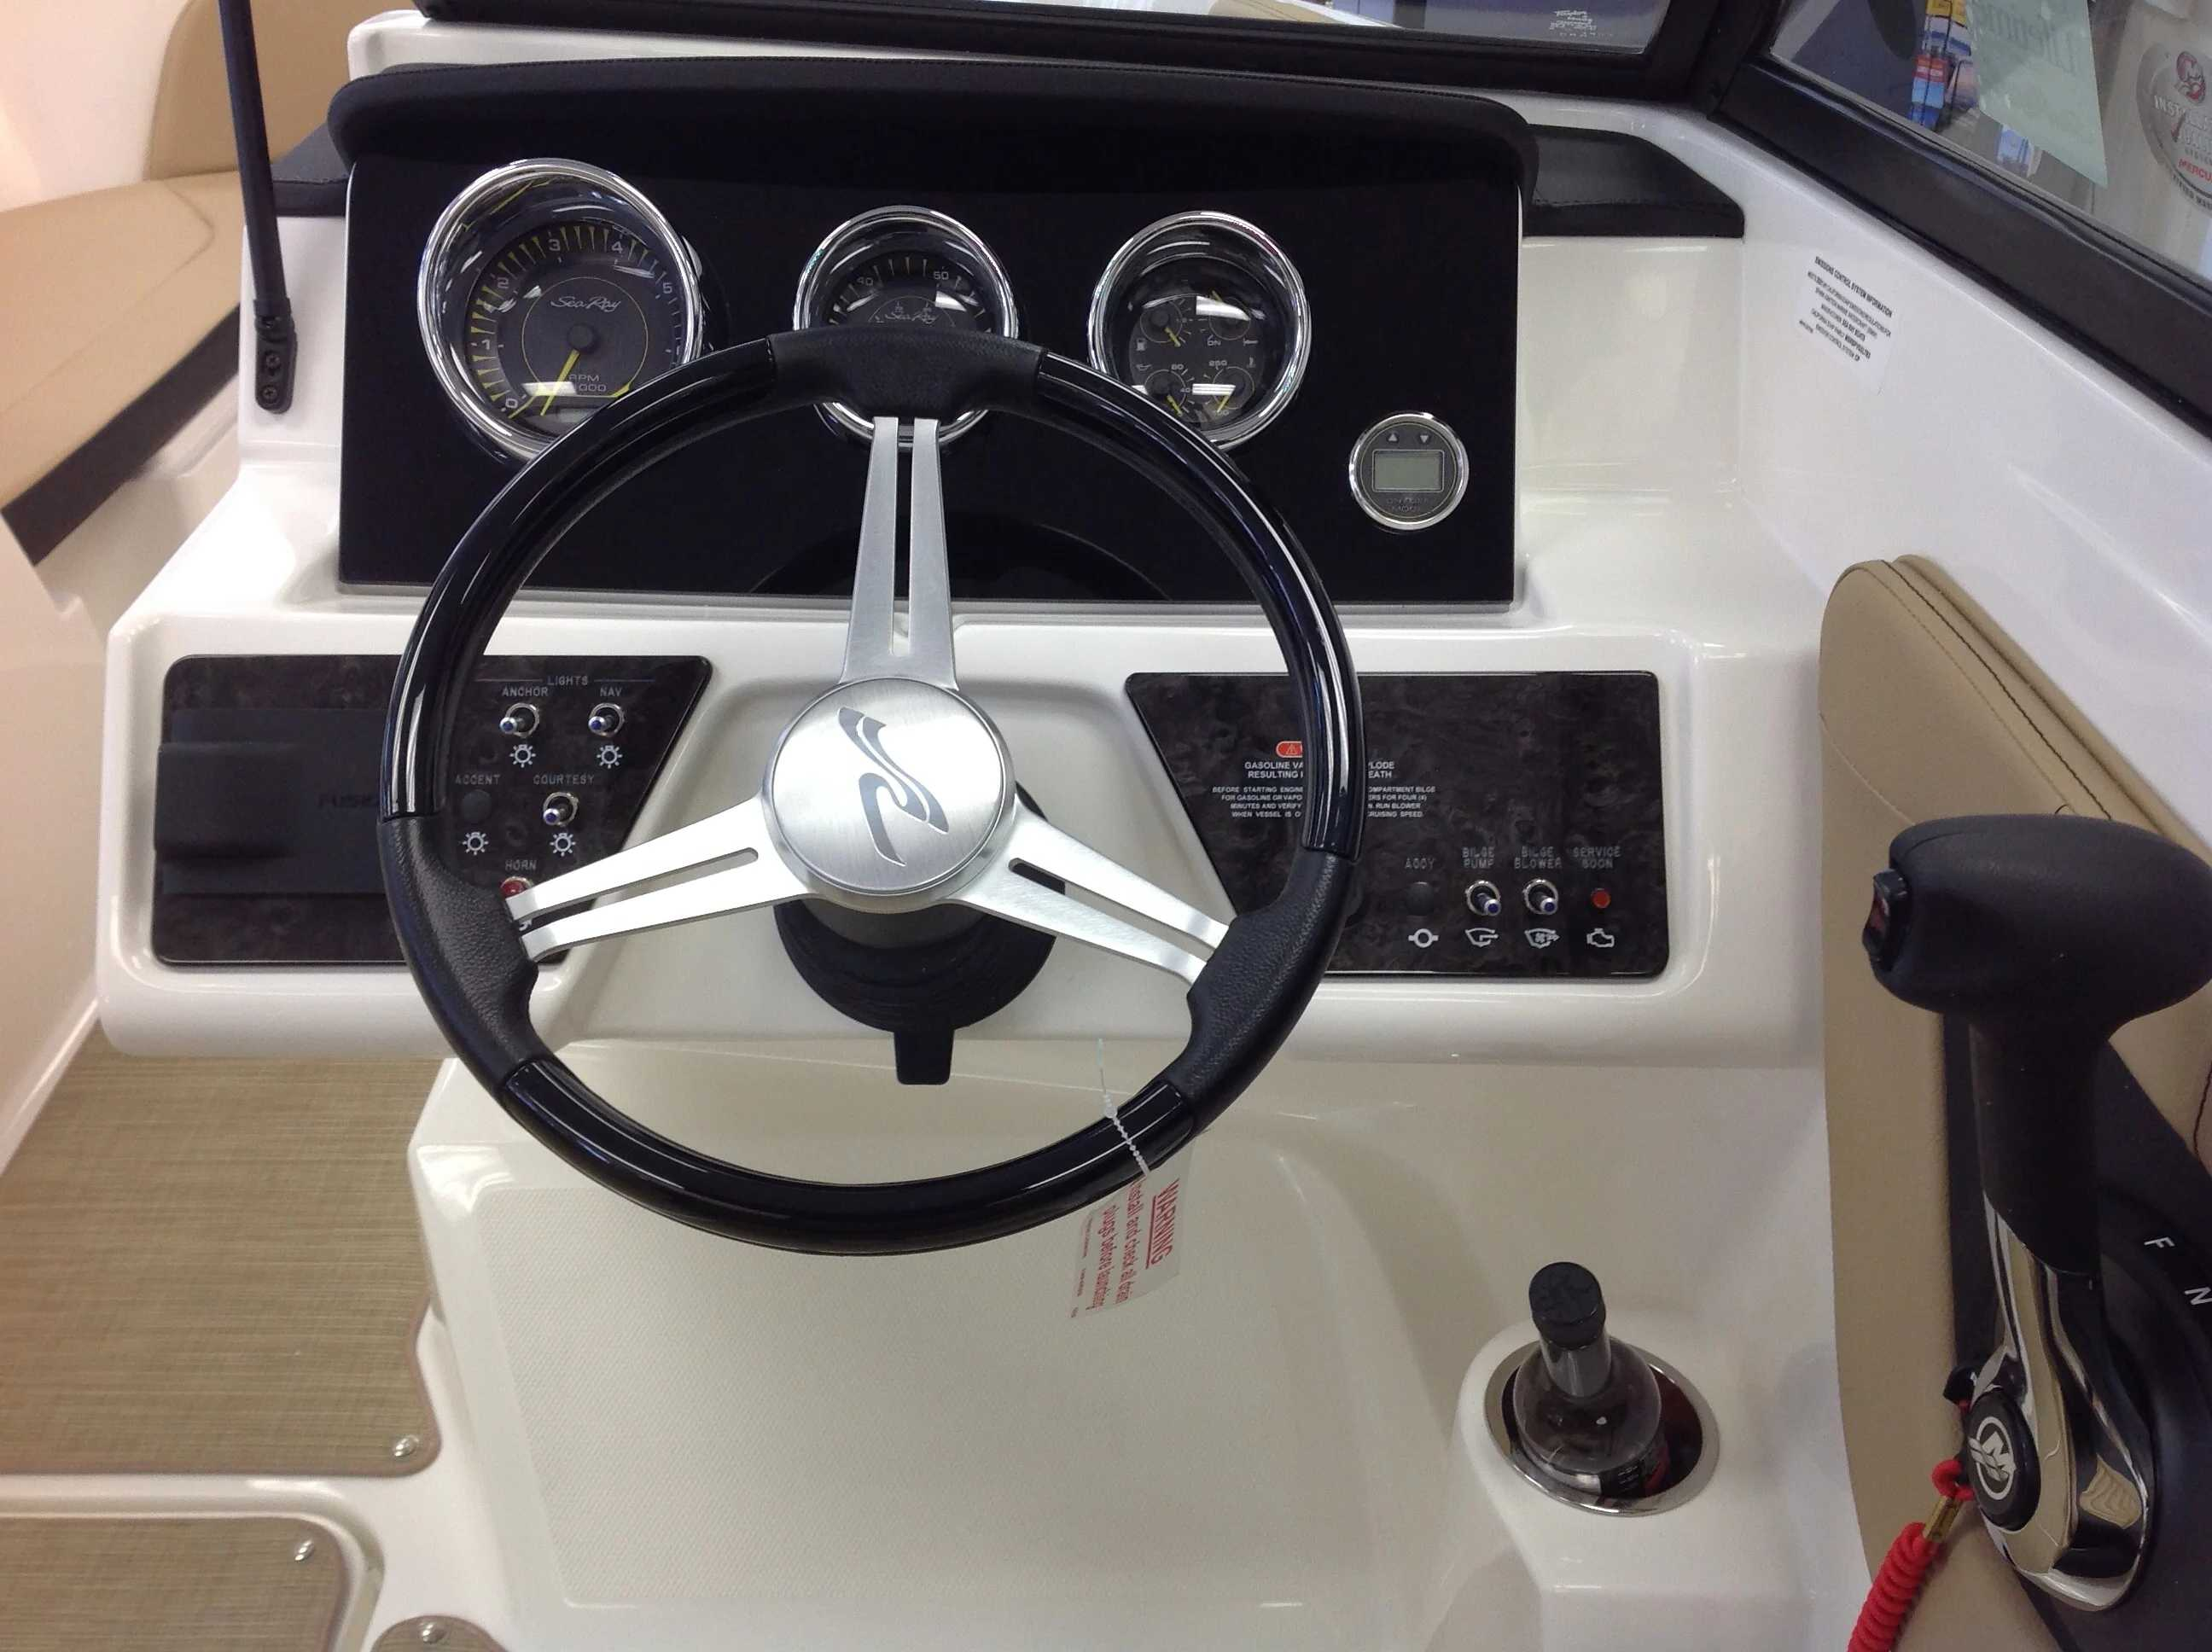 2021 Sea Ray boat for sale, model of the boat is 190 SPX & Image # 7 of 12